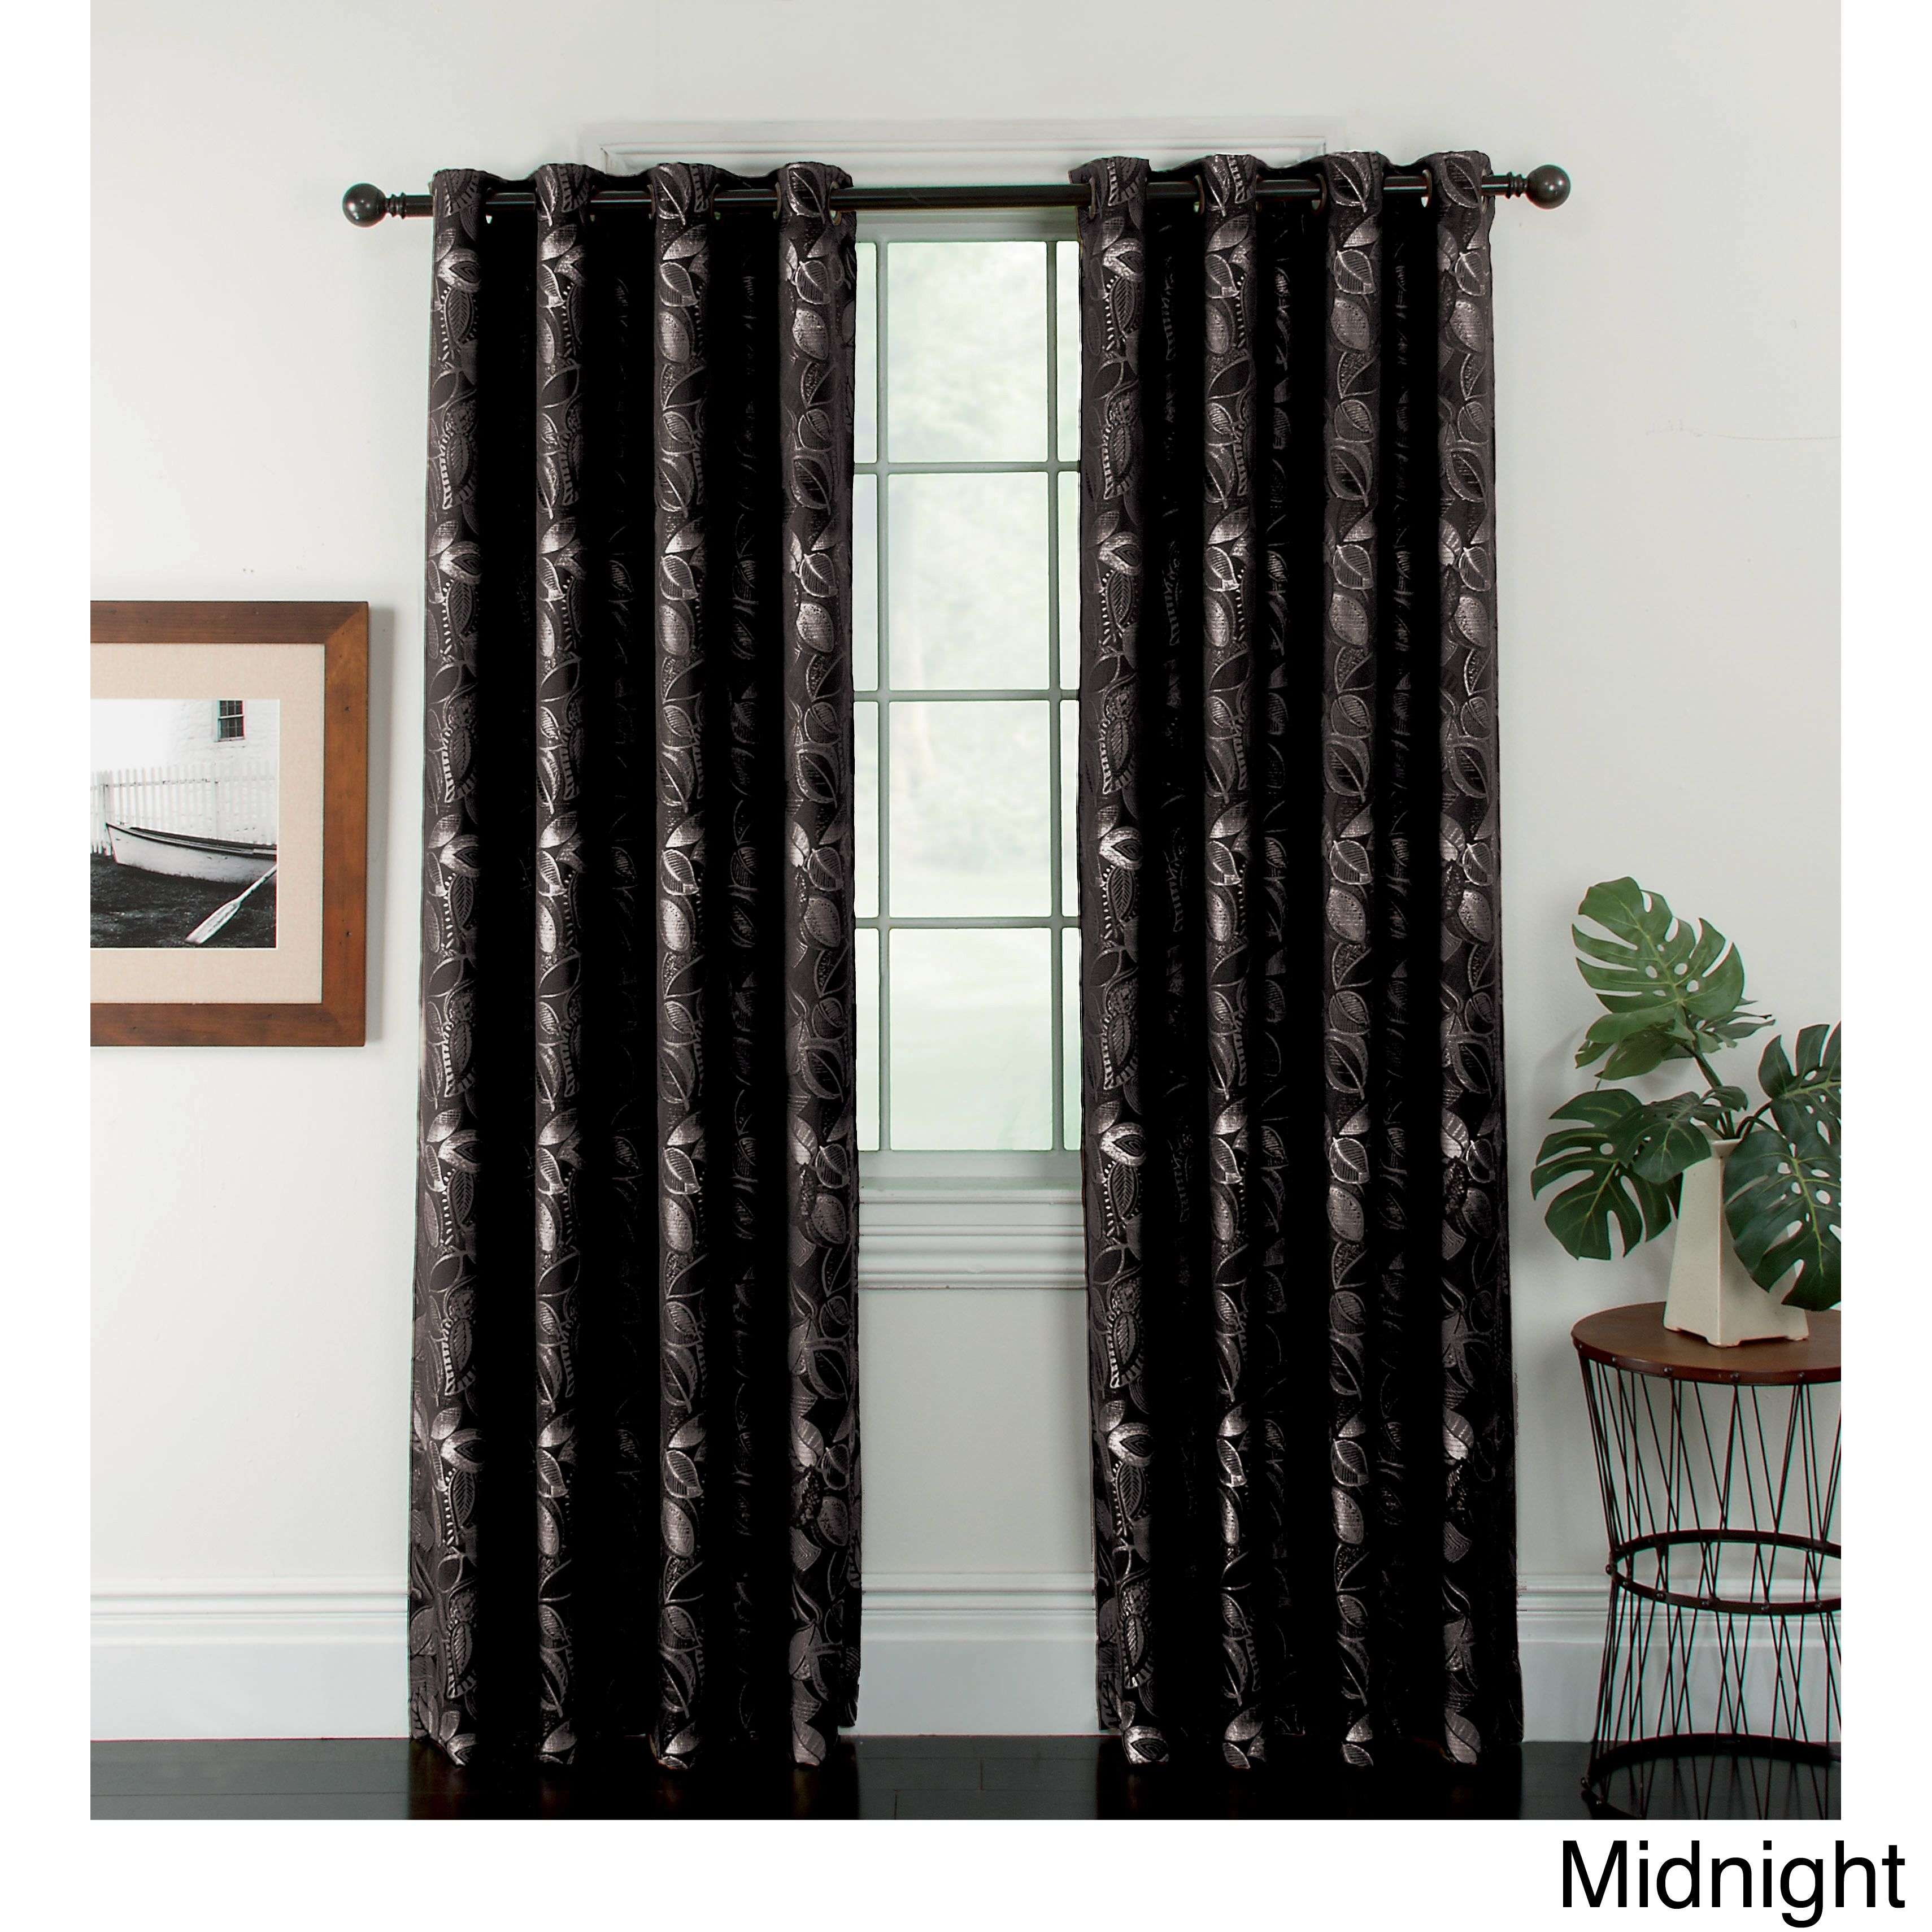 Lees Curtain Company Woven Jacquard Ganset Curtain Panels These